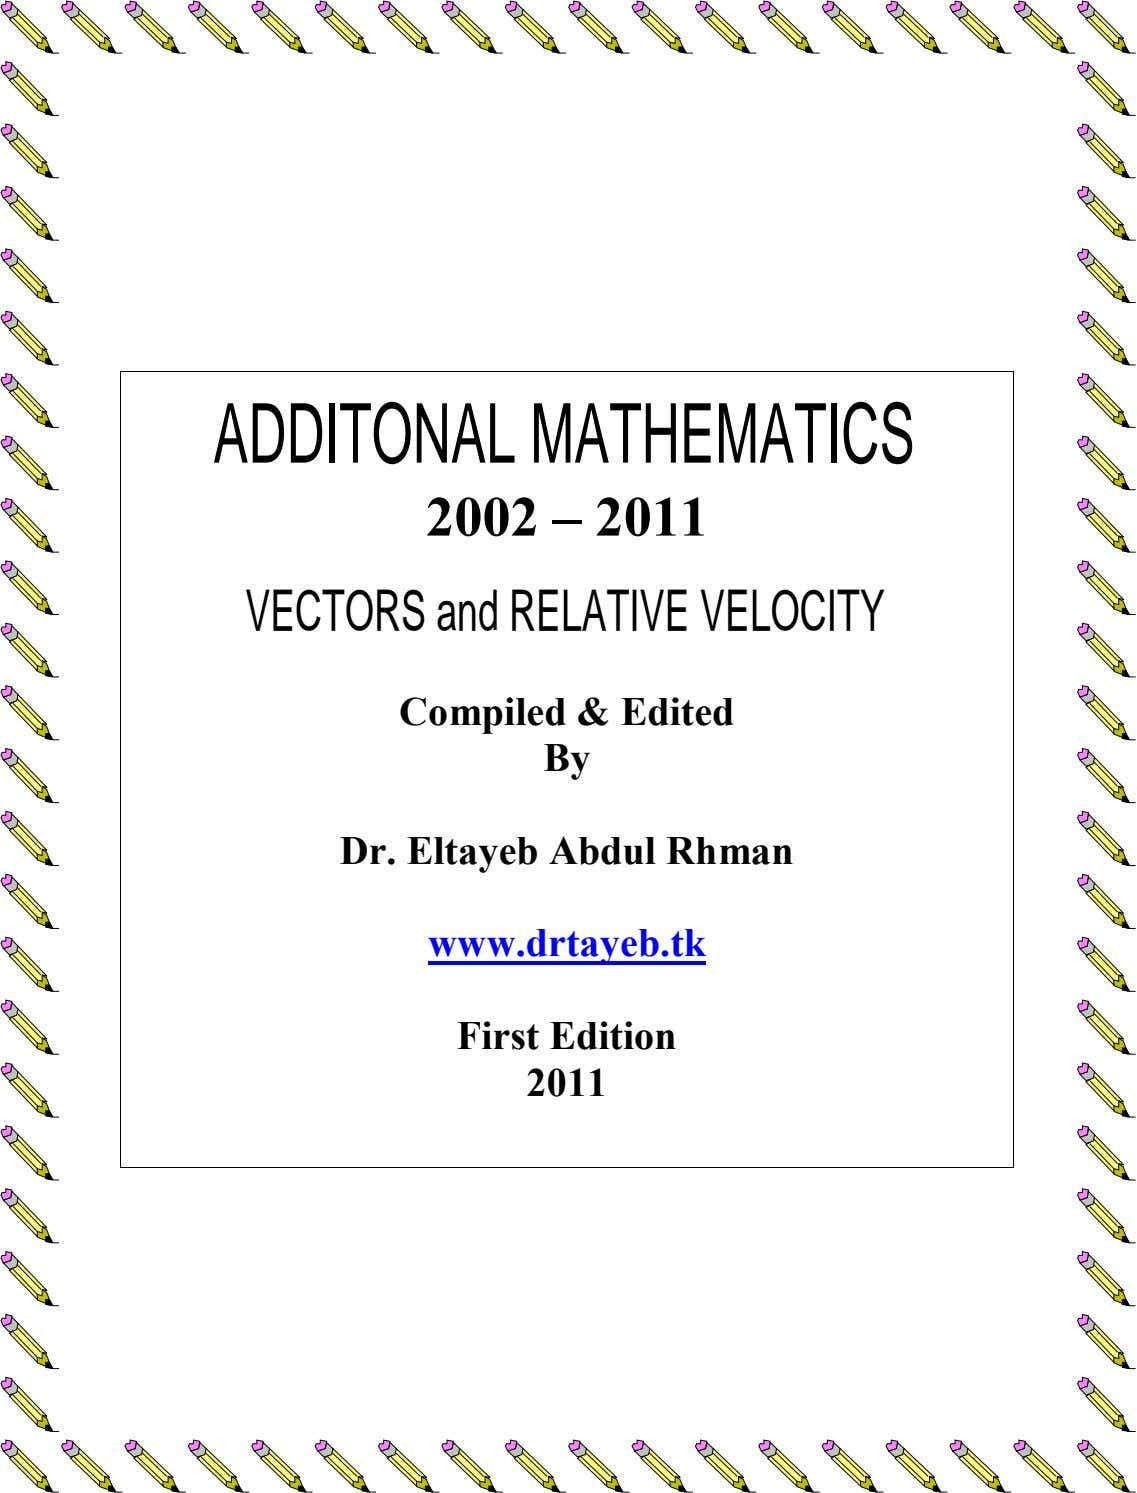 ADDITONALMATHEMATICS 2002 – 2011 VECTORSandRELATIVEVELOCITY Compiled & Edited By Dr. Eltayeb Abdul Rhman